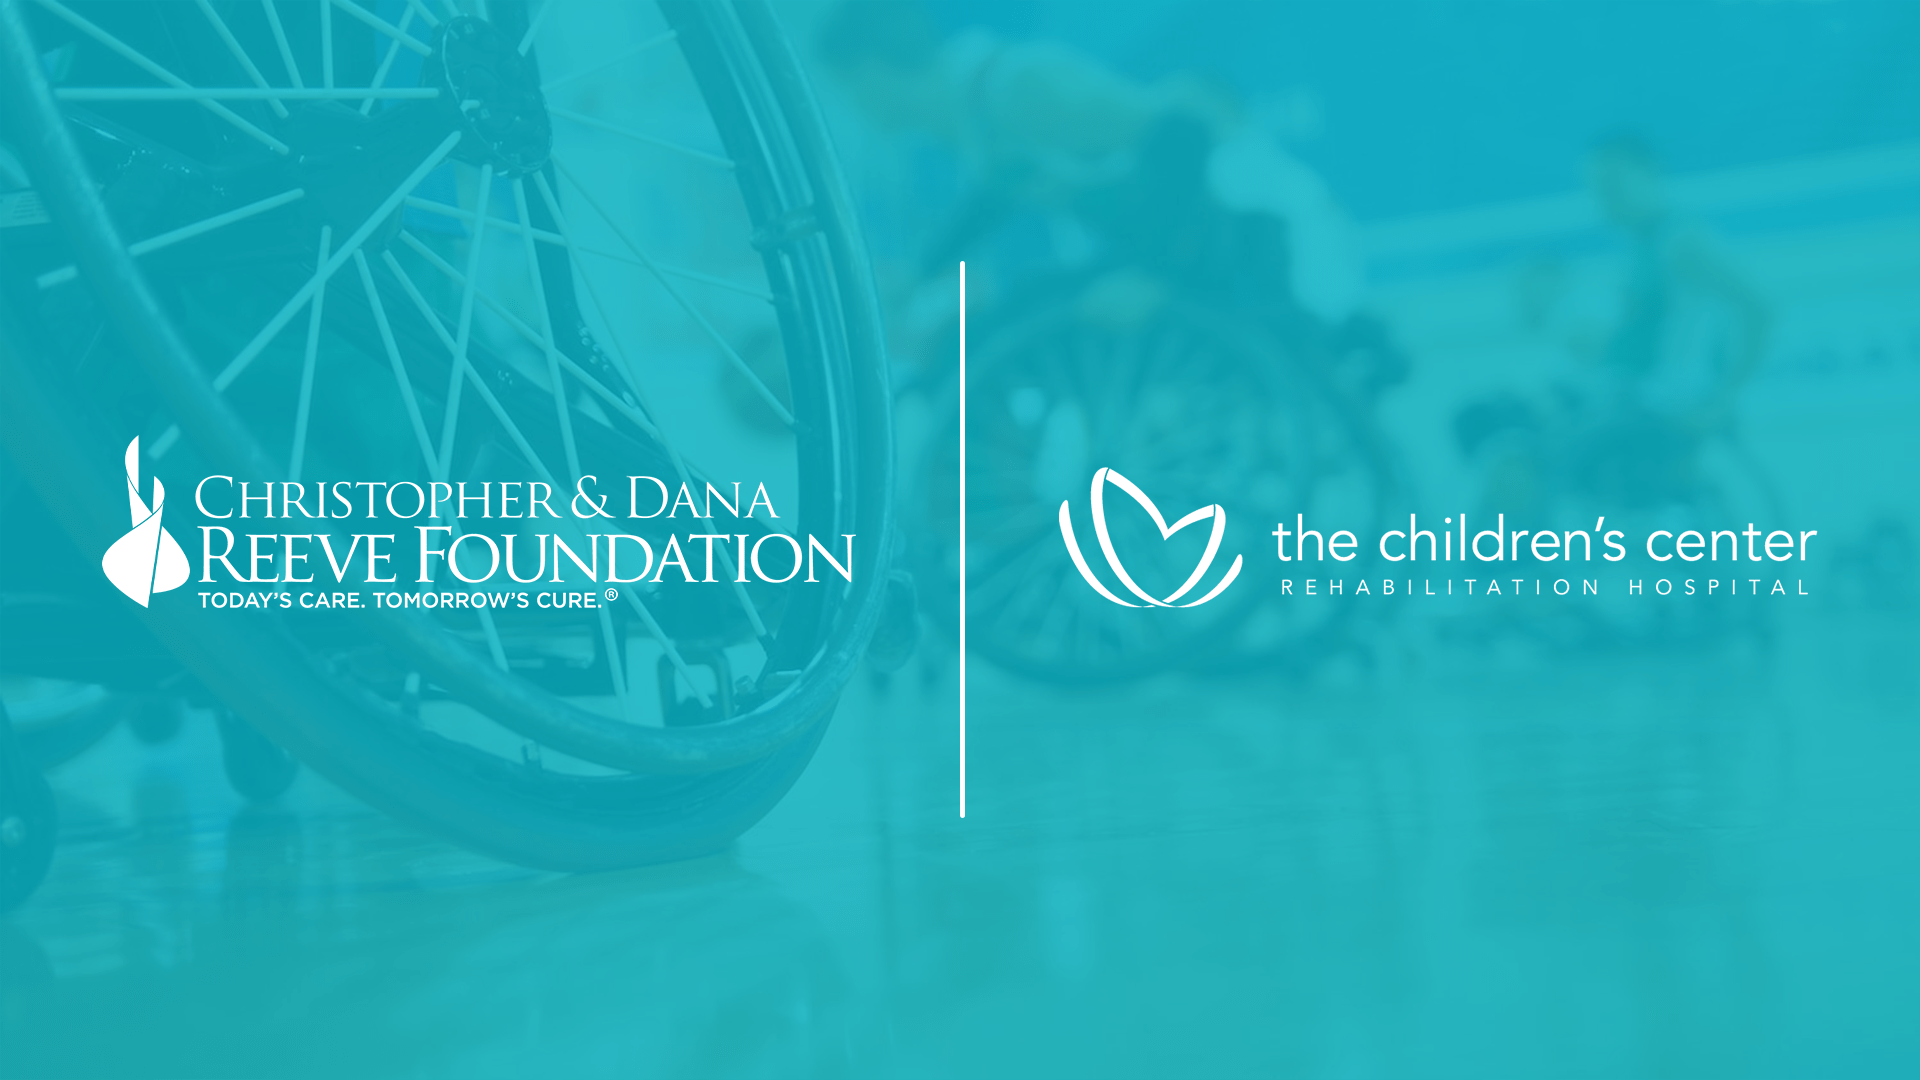 The Children's Center Rehabilitation Hospital Receives Quality of Life Grant From Christopher & Dana Reeve Foundation For Adaptive Sports Equipment